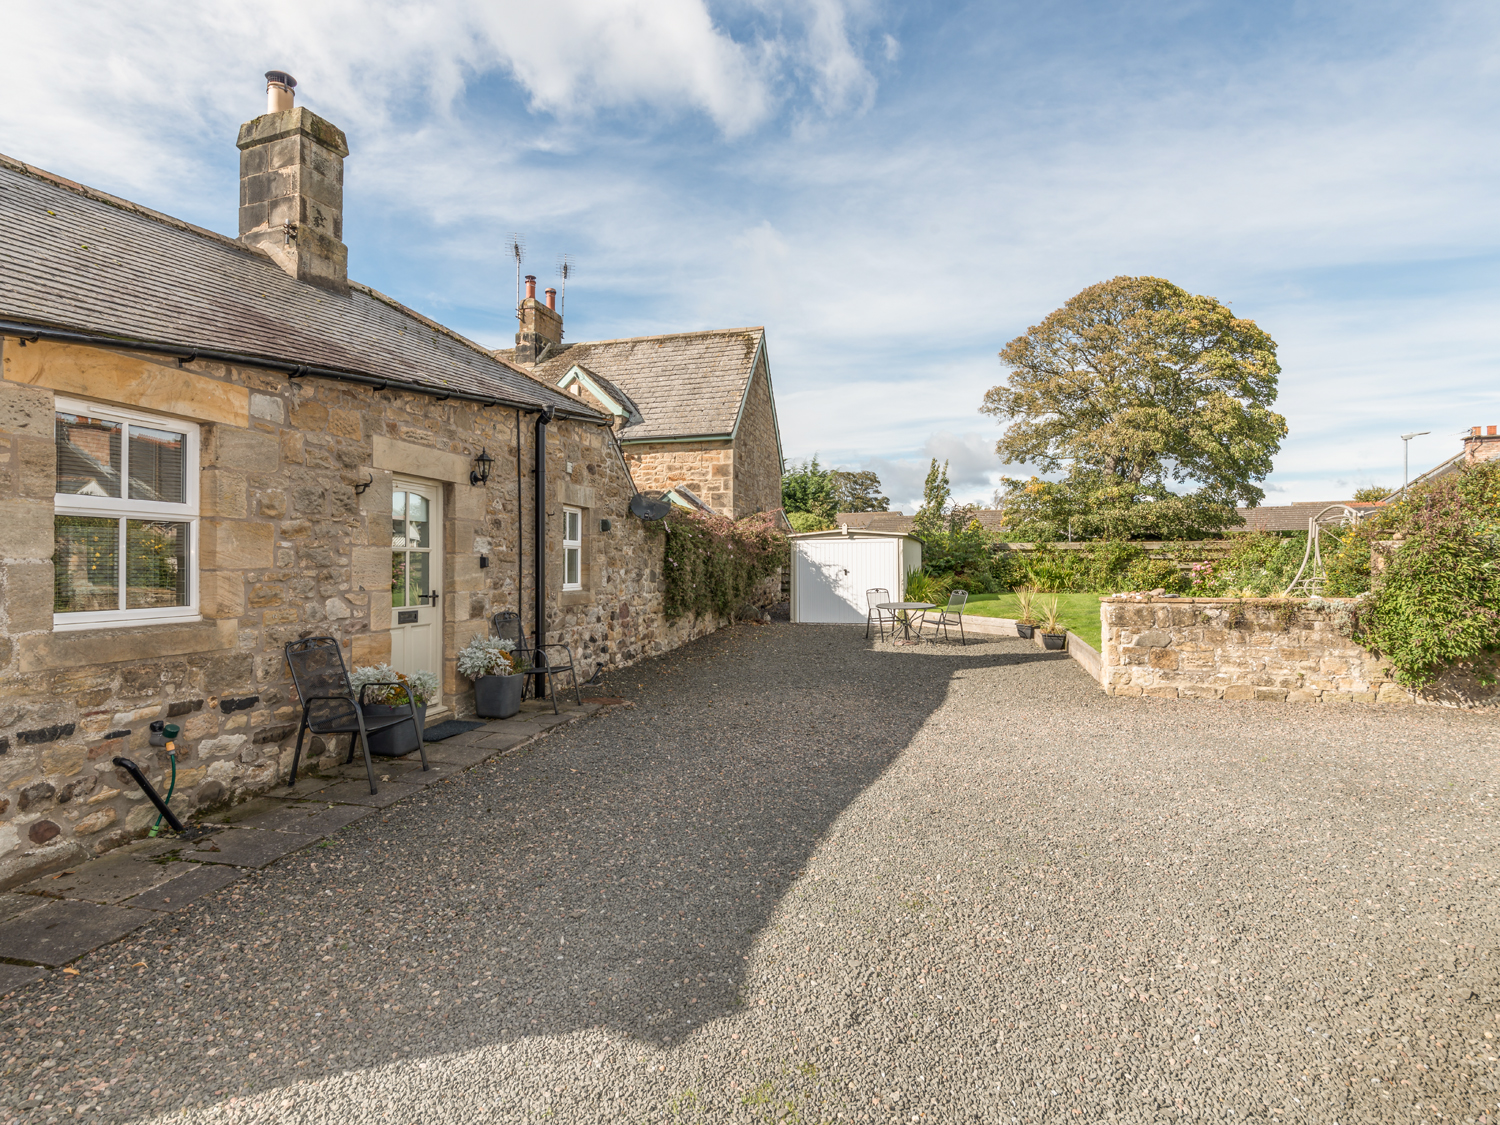 Puffin Cottage, Northumbria